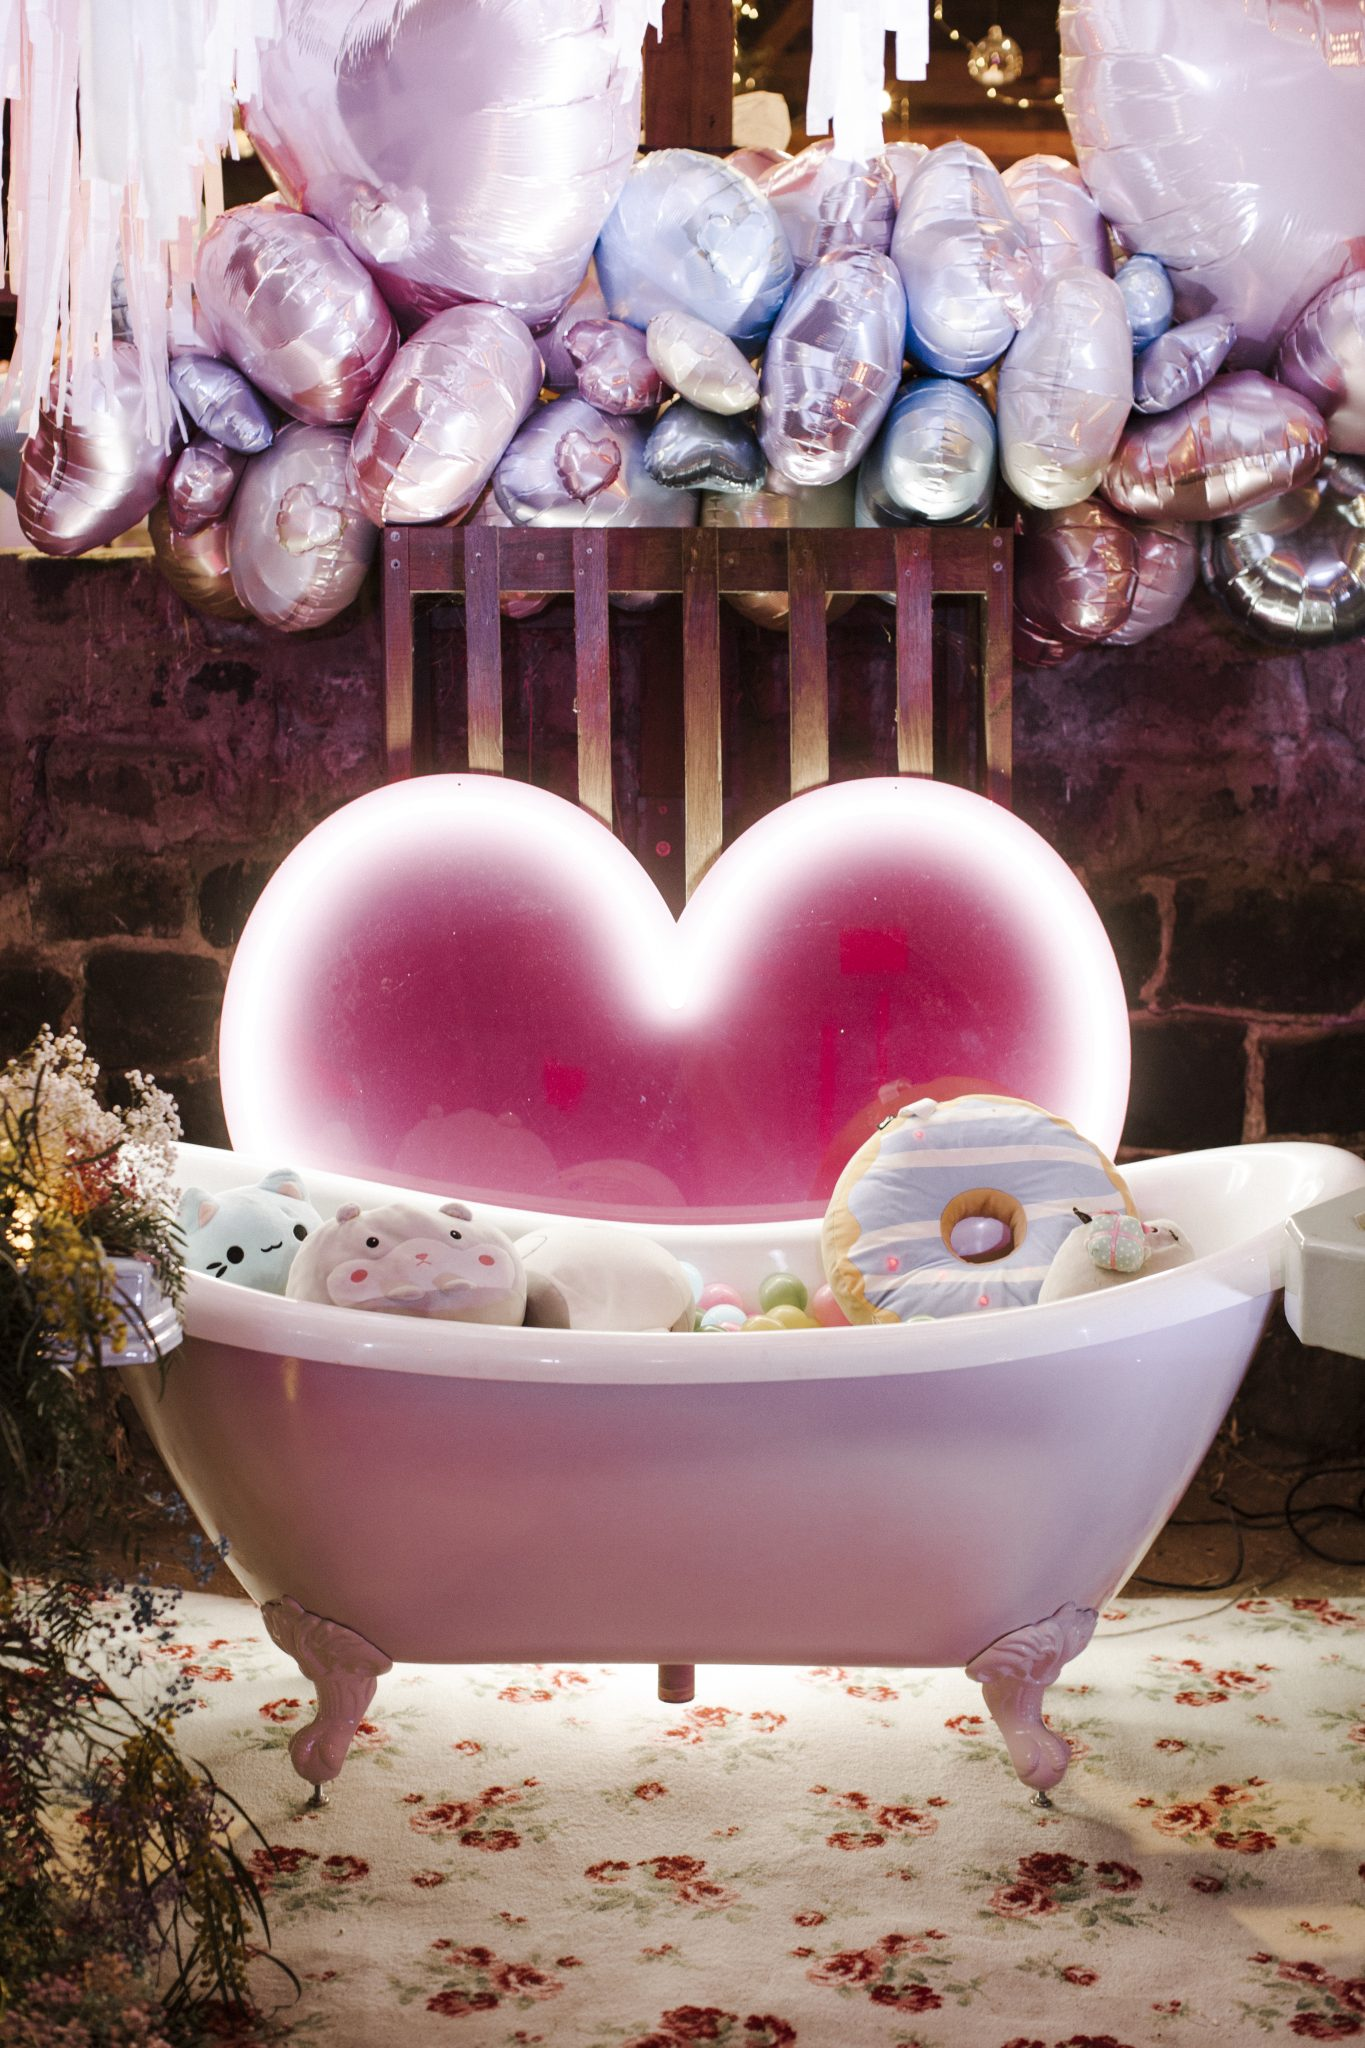 Whimsical Dollhouse Wedding Reception - Pink vintage bathtub